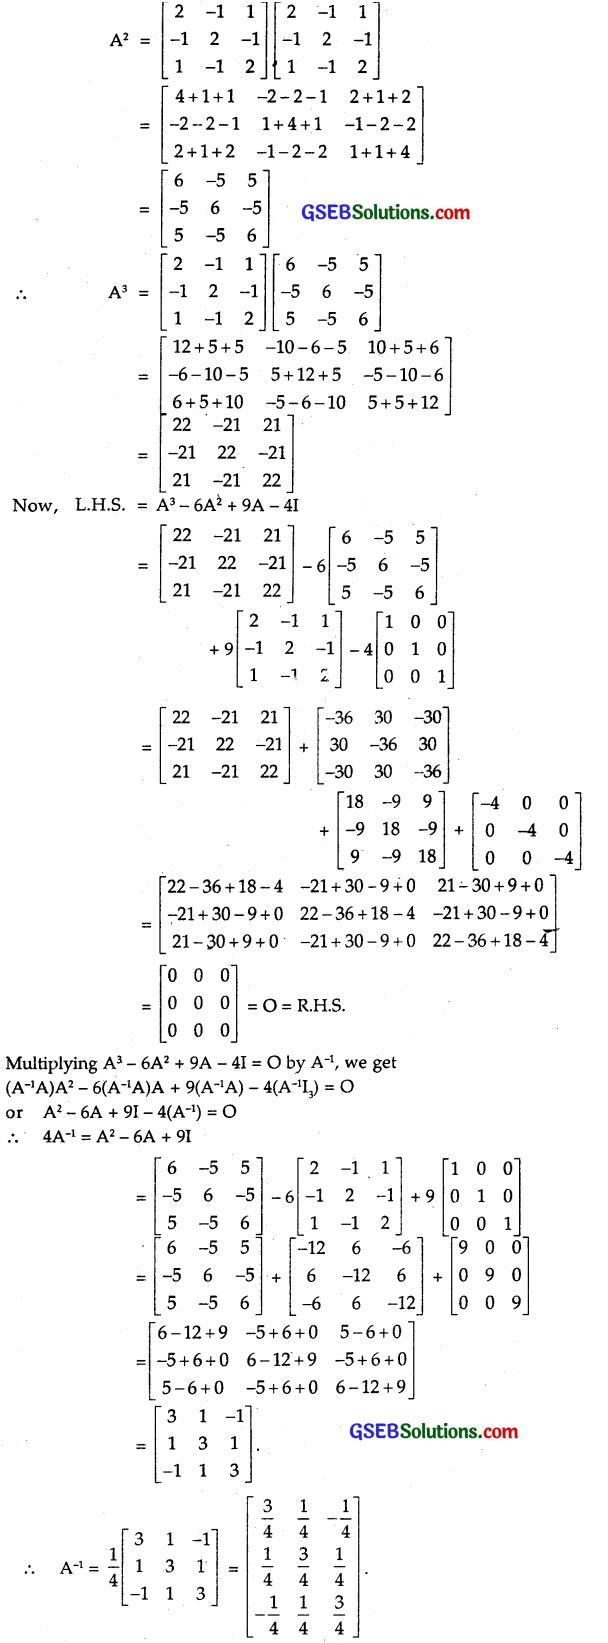 GSEB Solutions Class 12 Maths Chapter 4 Determinants Ex 4.5 14